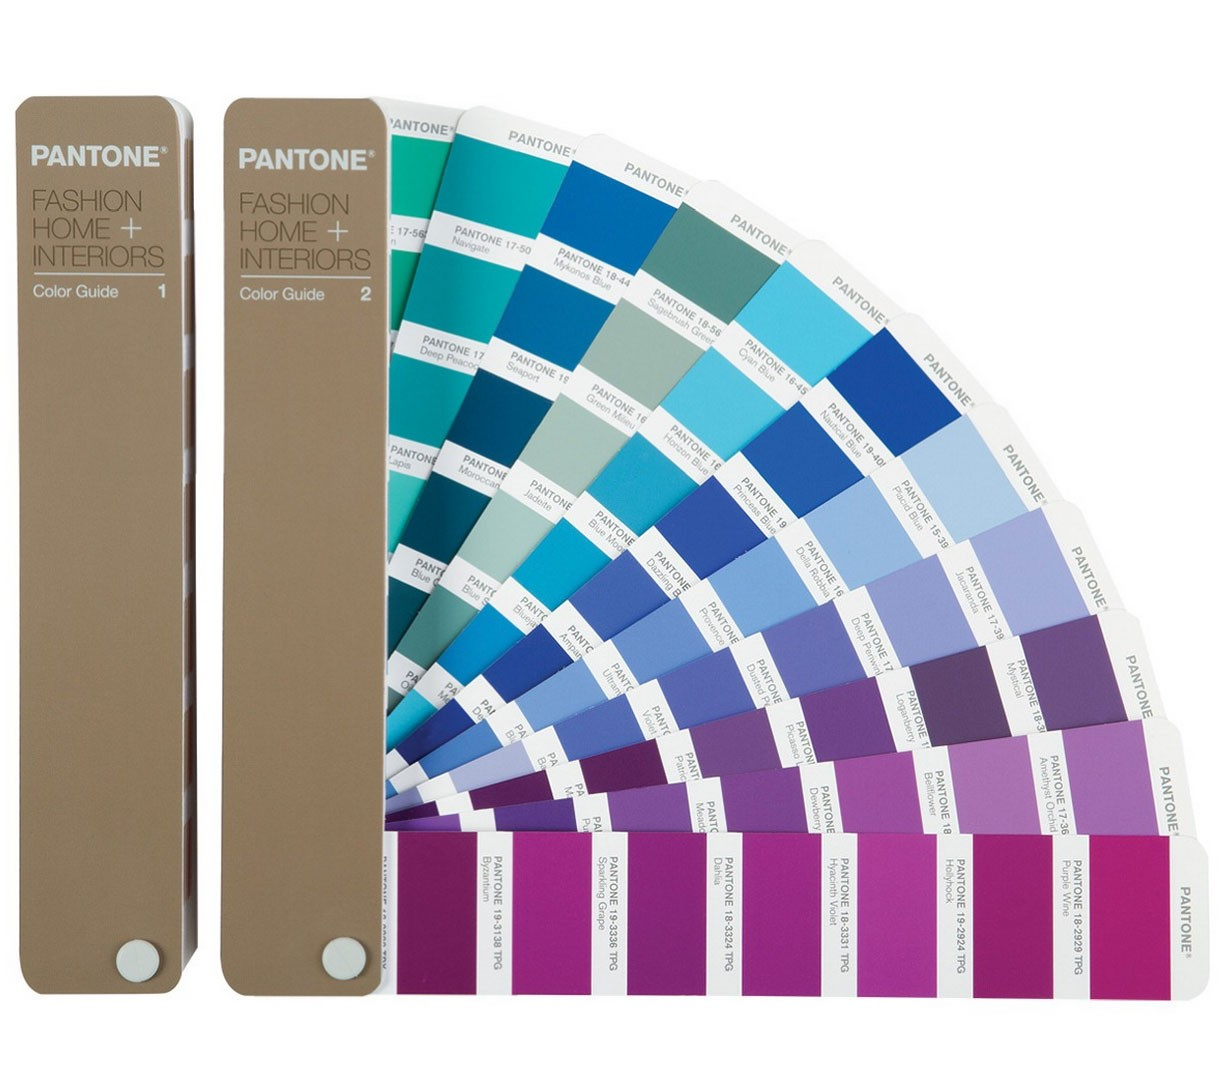 fashion home interiors new pantone colors for fashion buy pantone metallics coated guide plus series edition